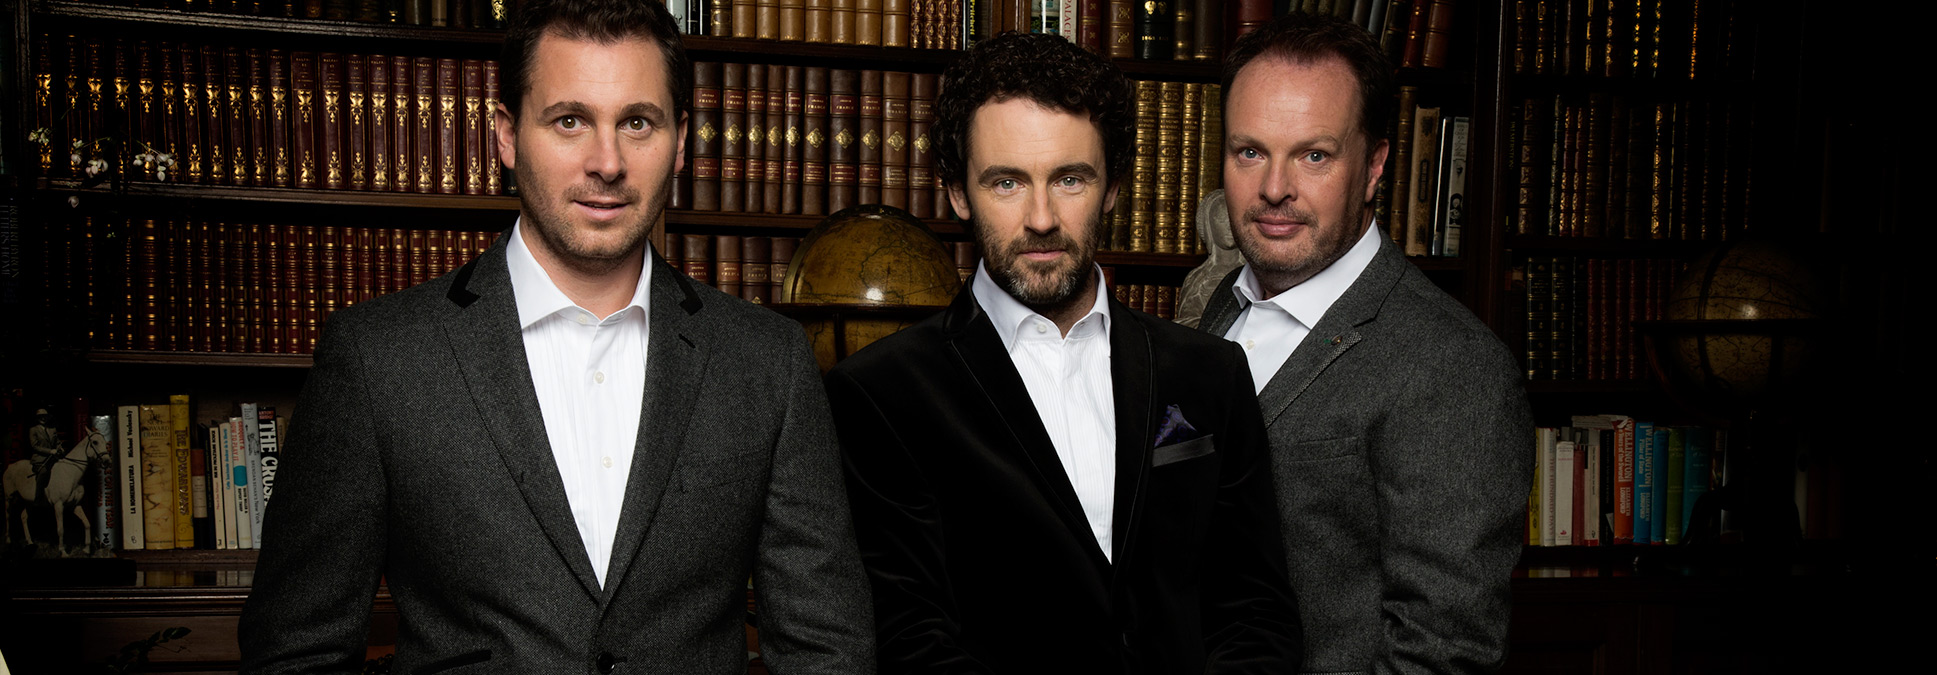 Celtic Tenors at the Marcus Center Milwaukee